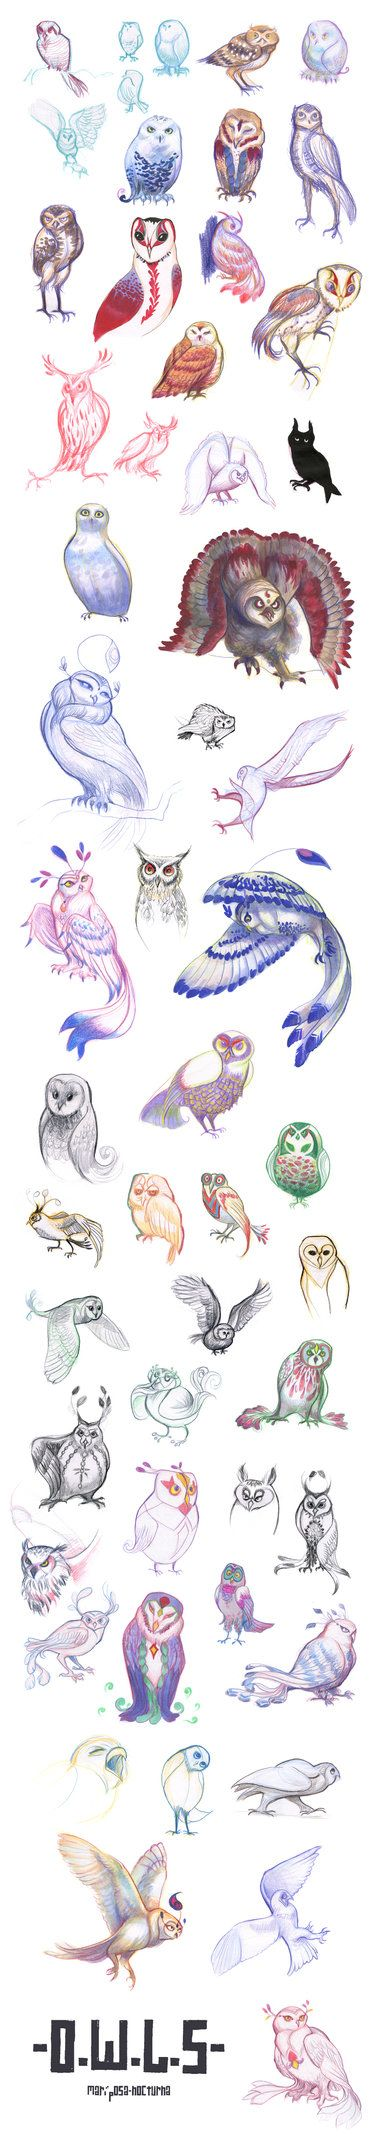 owls by Mariposa Nocturna